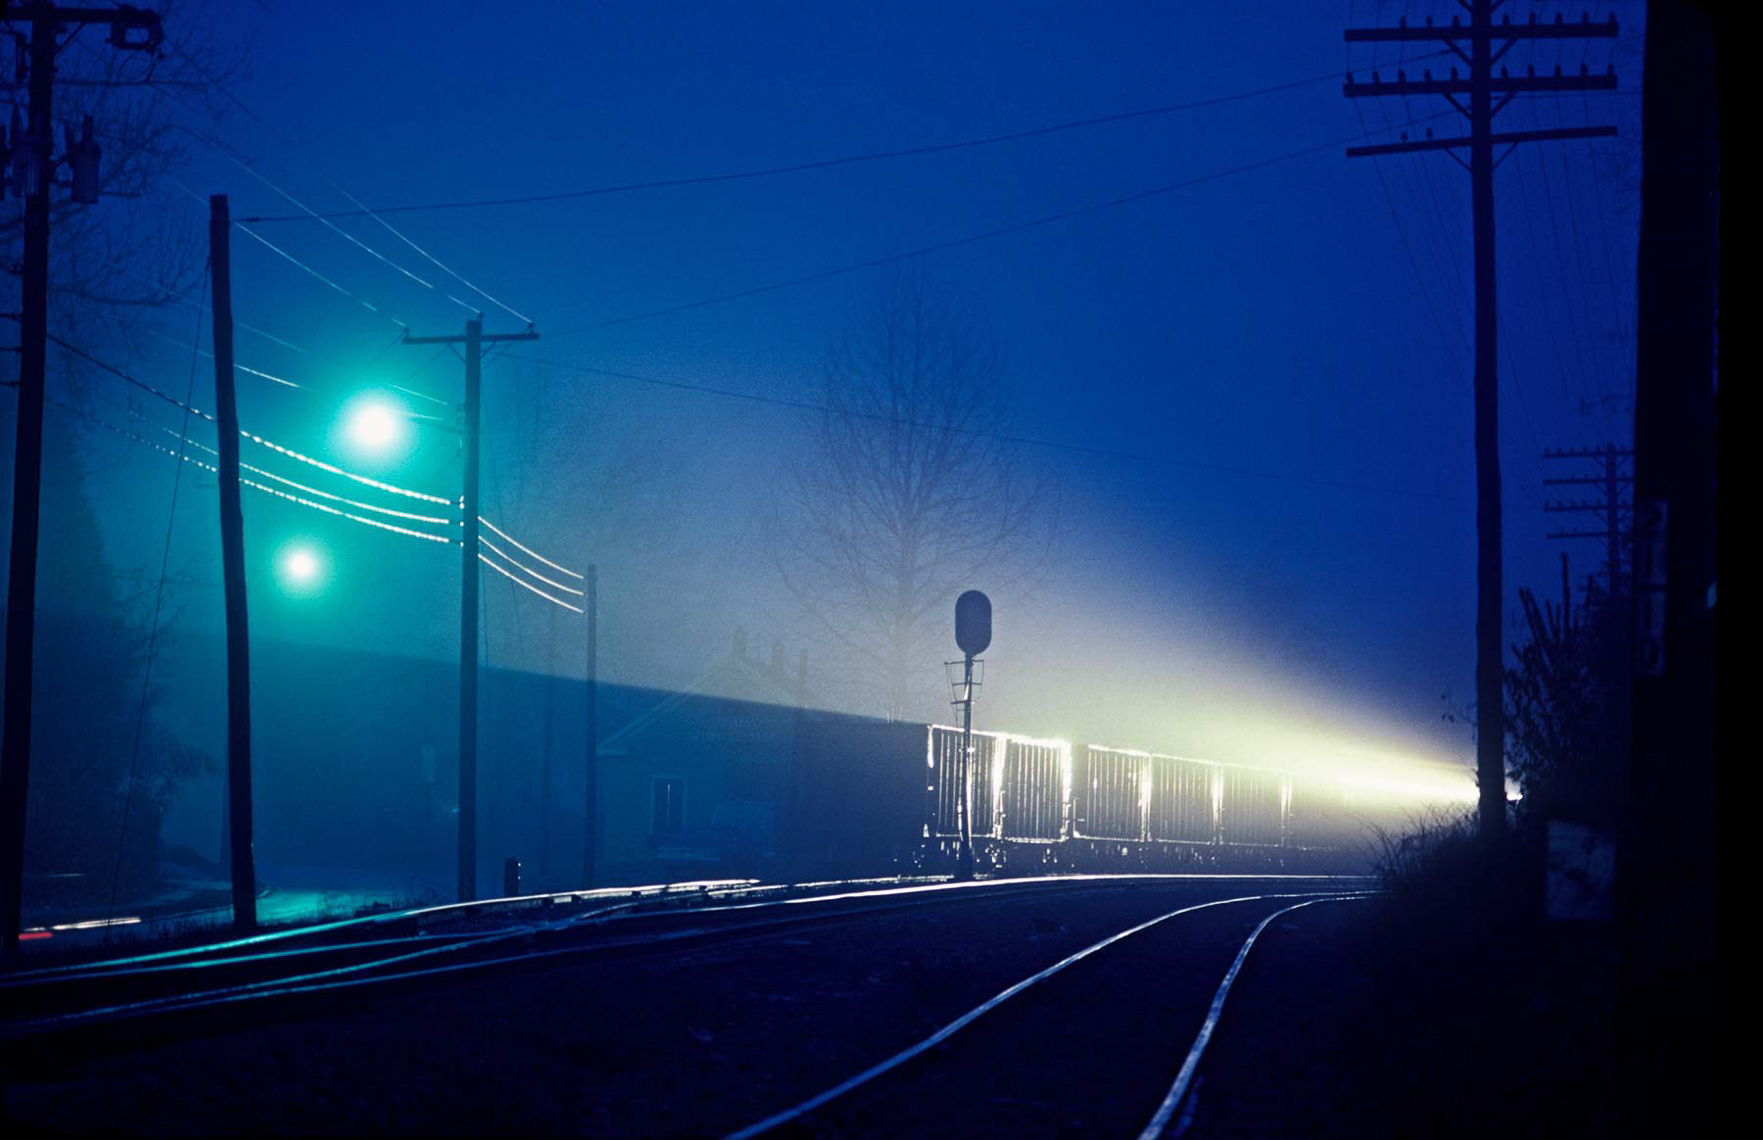 013-Train-light-at-night